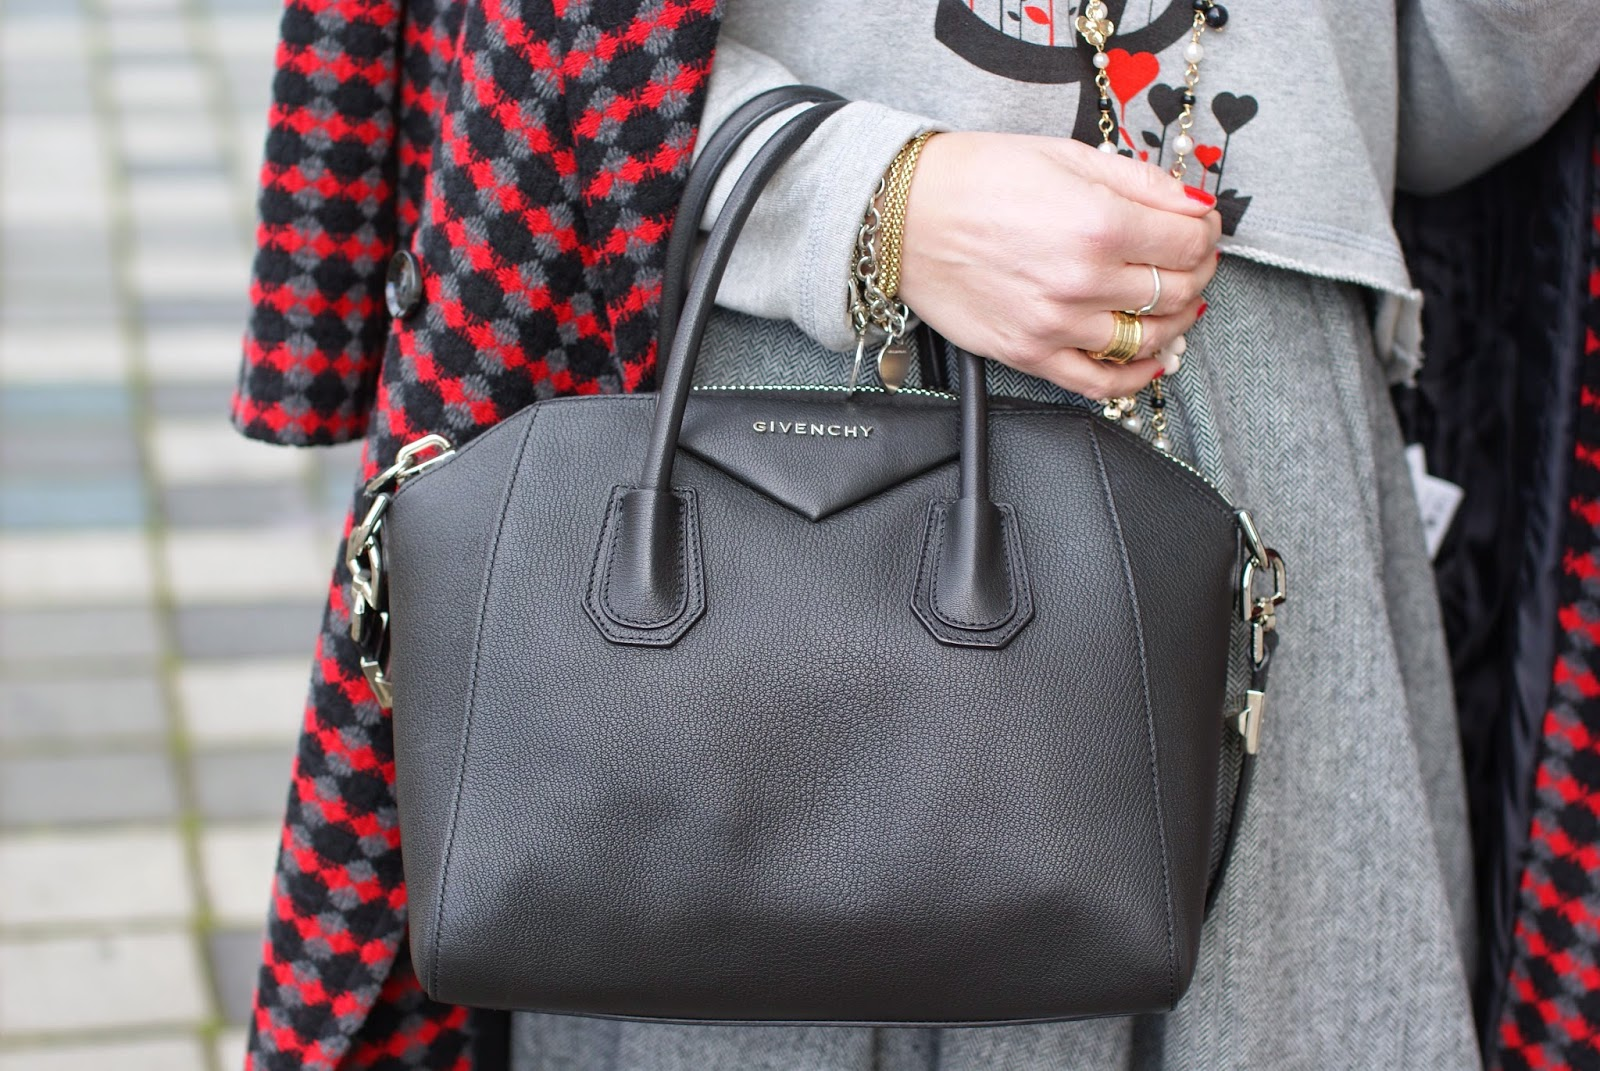 Givenchy Antigona small bag, Fashion and Cookies, fashion blogger, fashion blog